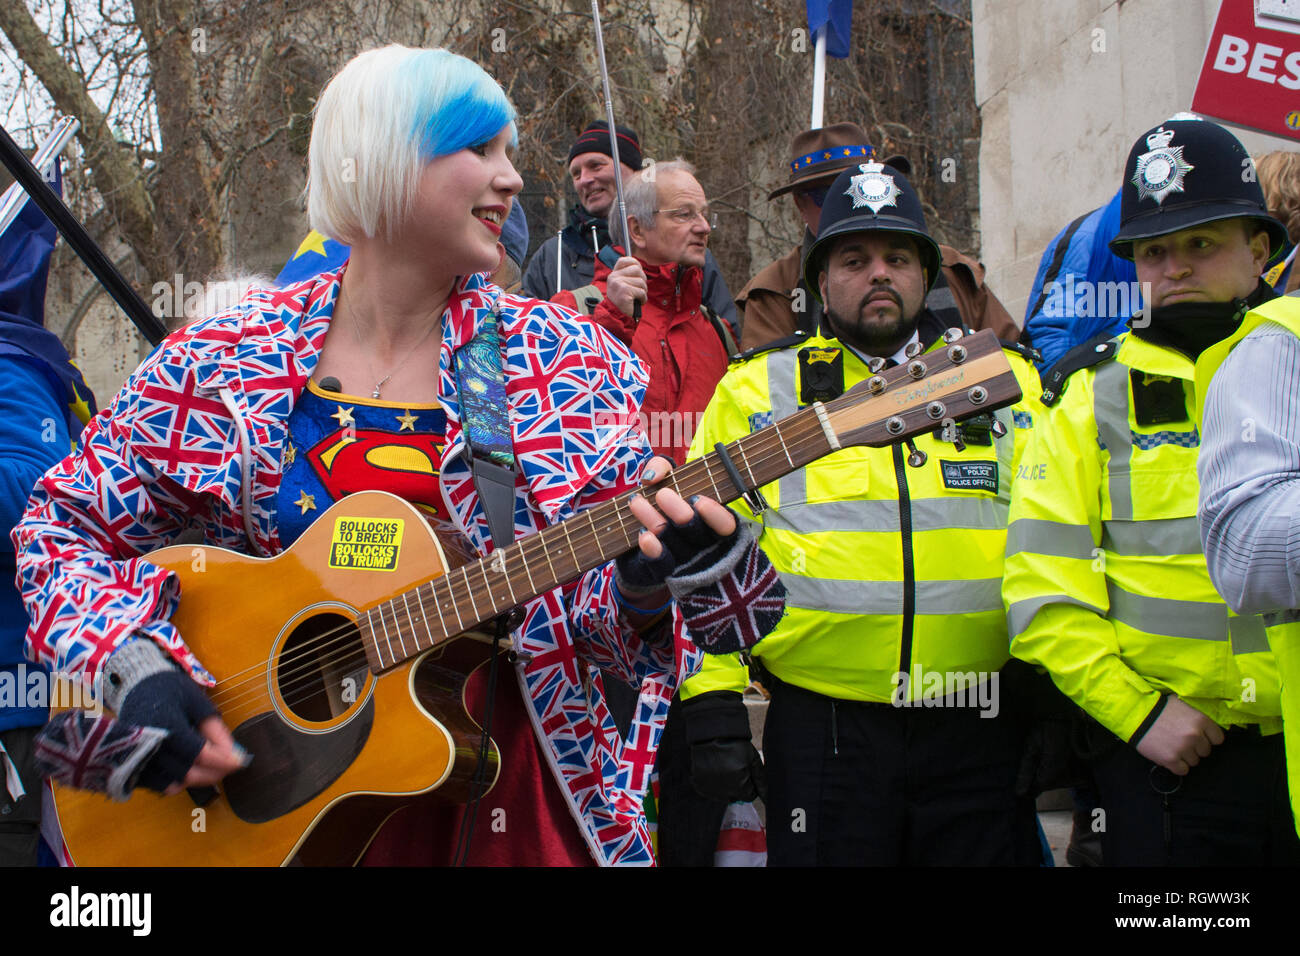 29 Jan 2019 London UK - Madeleina Kay (EU Supergirl) singing and being interviewed at SODEM (Stand of Defiance, European Movement) out side Parliament - Stock Image